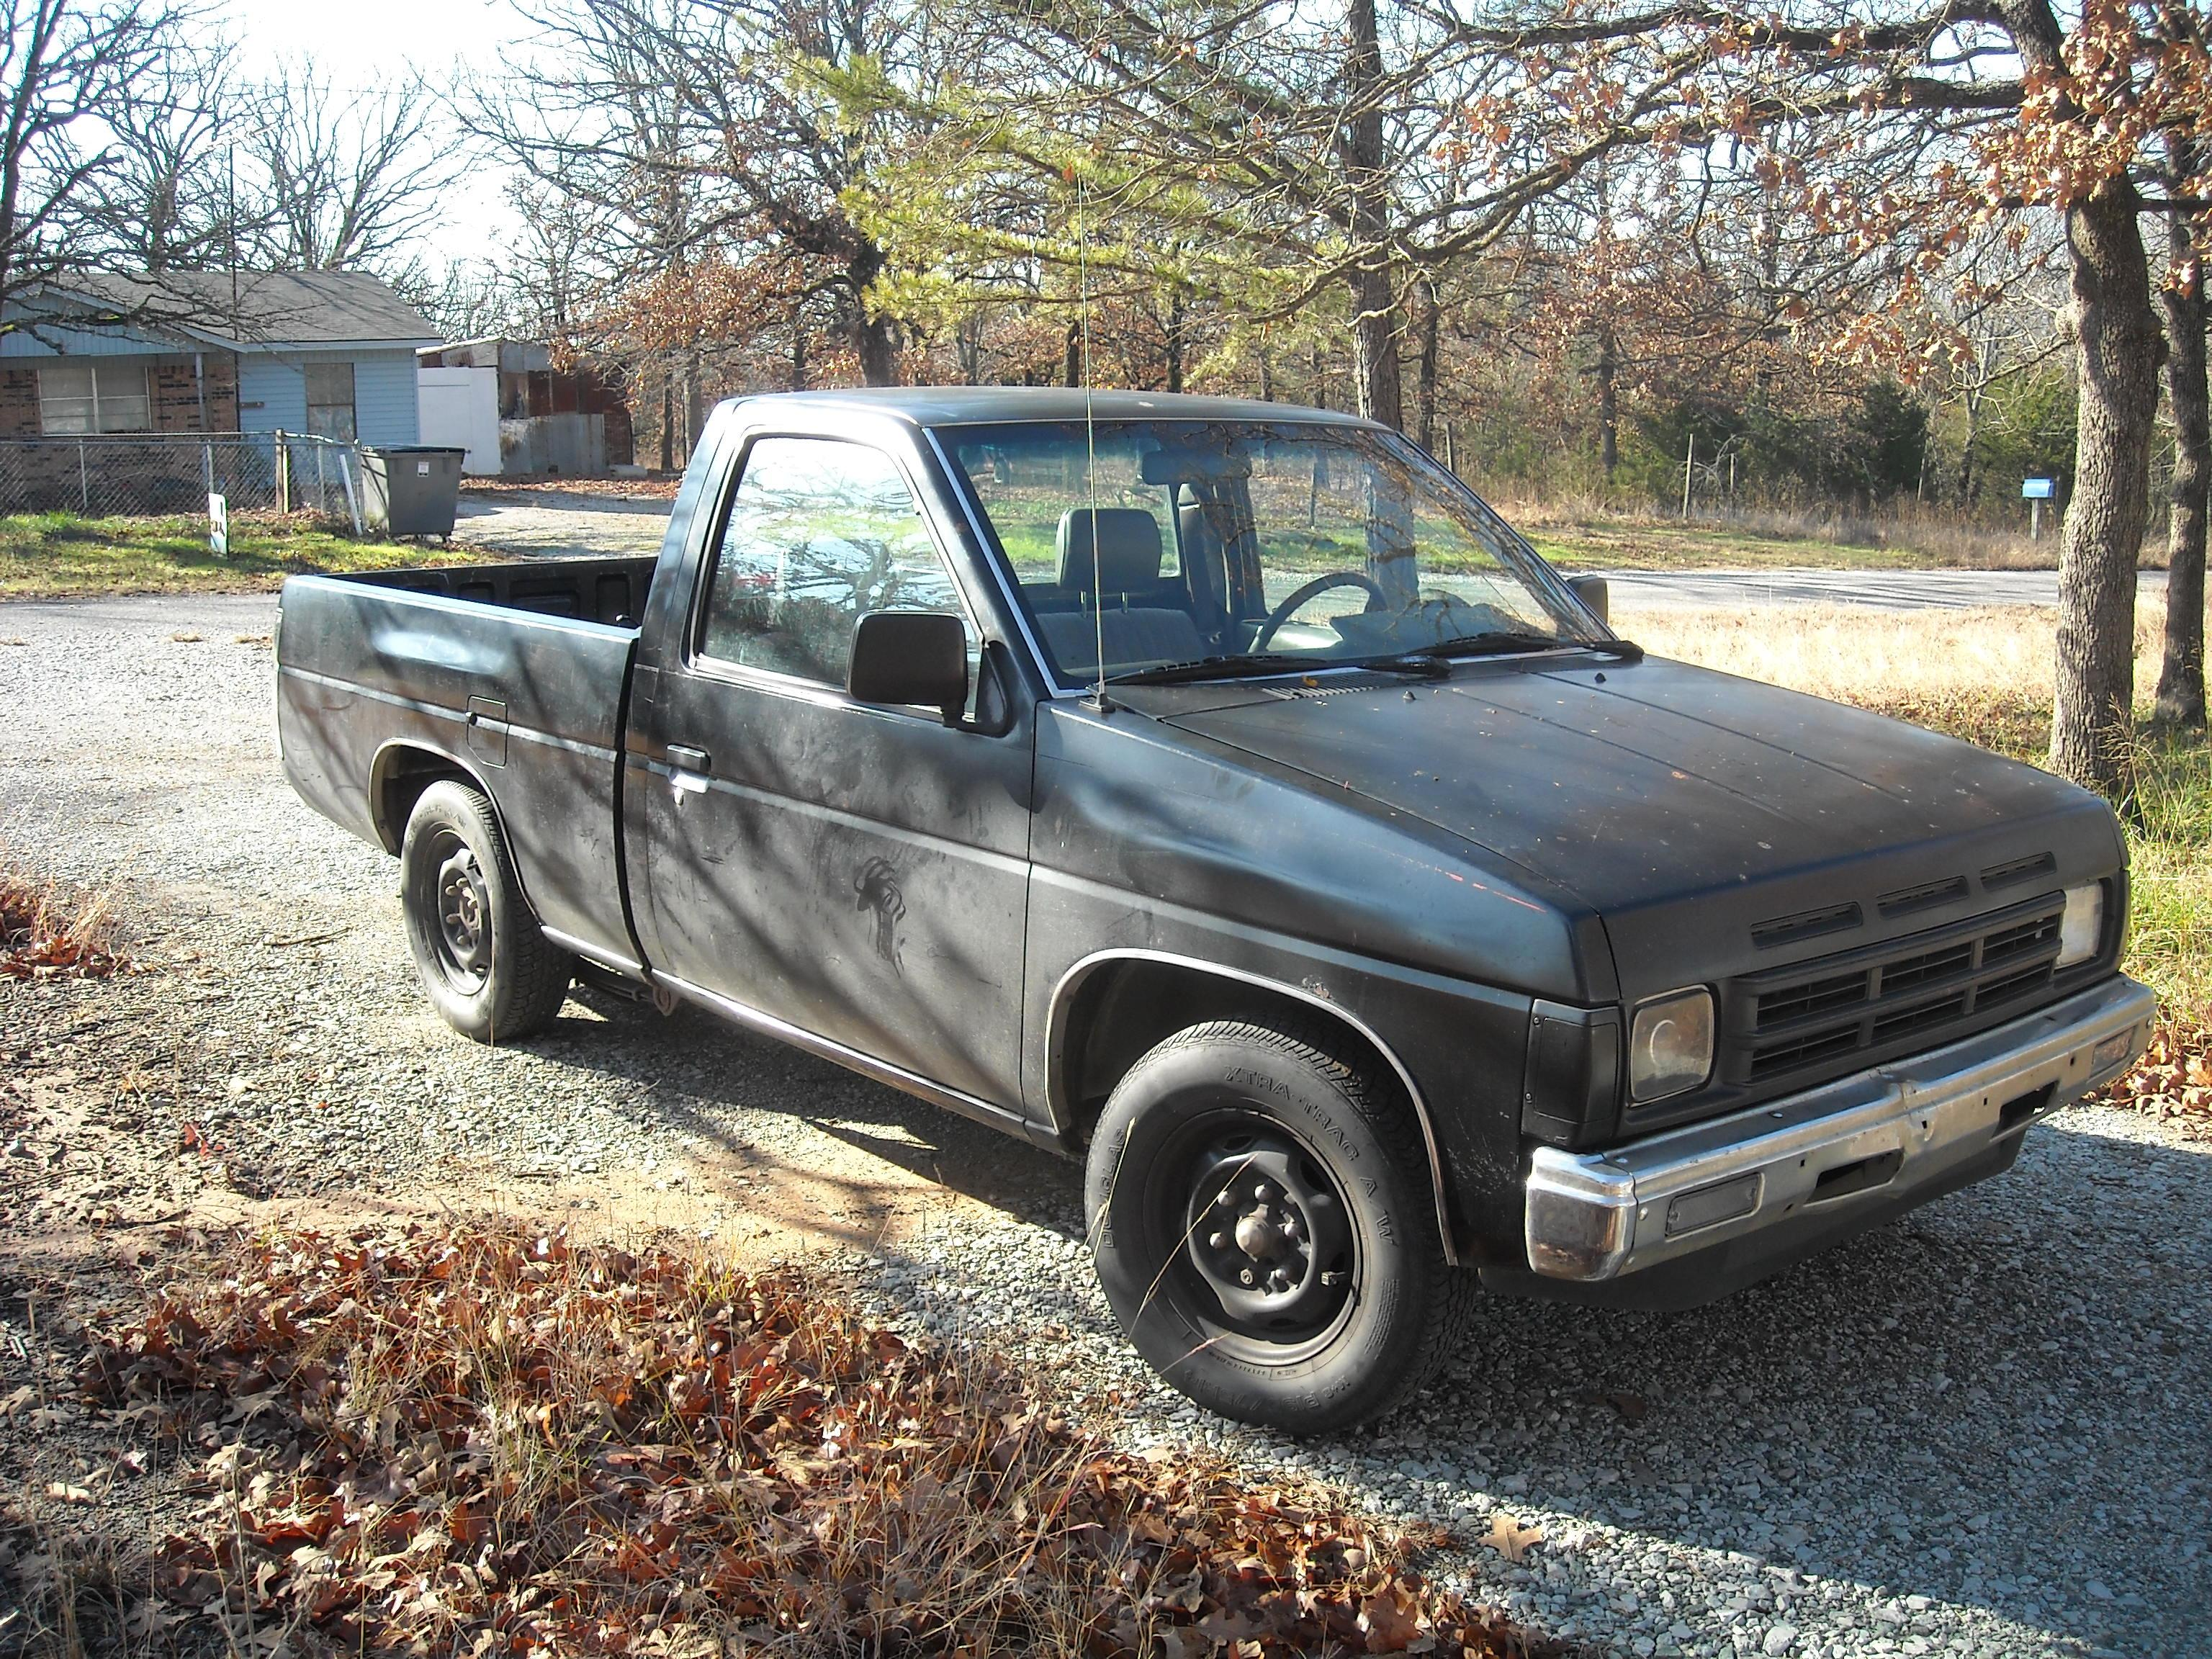 snoop-e's 1990 Nissan D21 Pick-Up